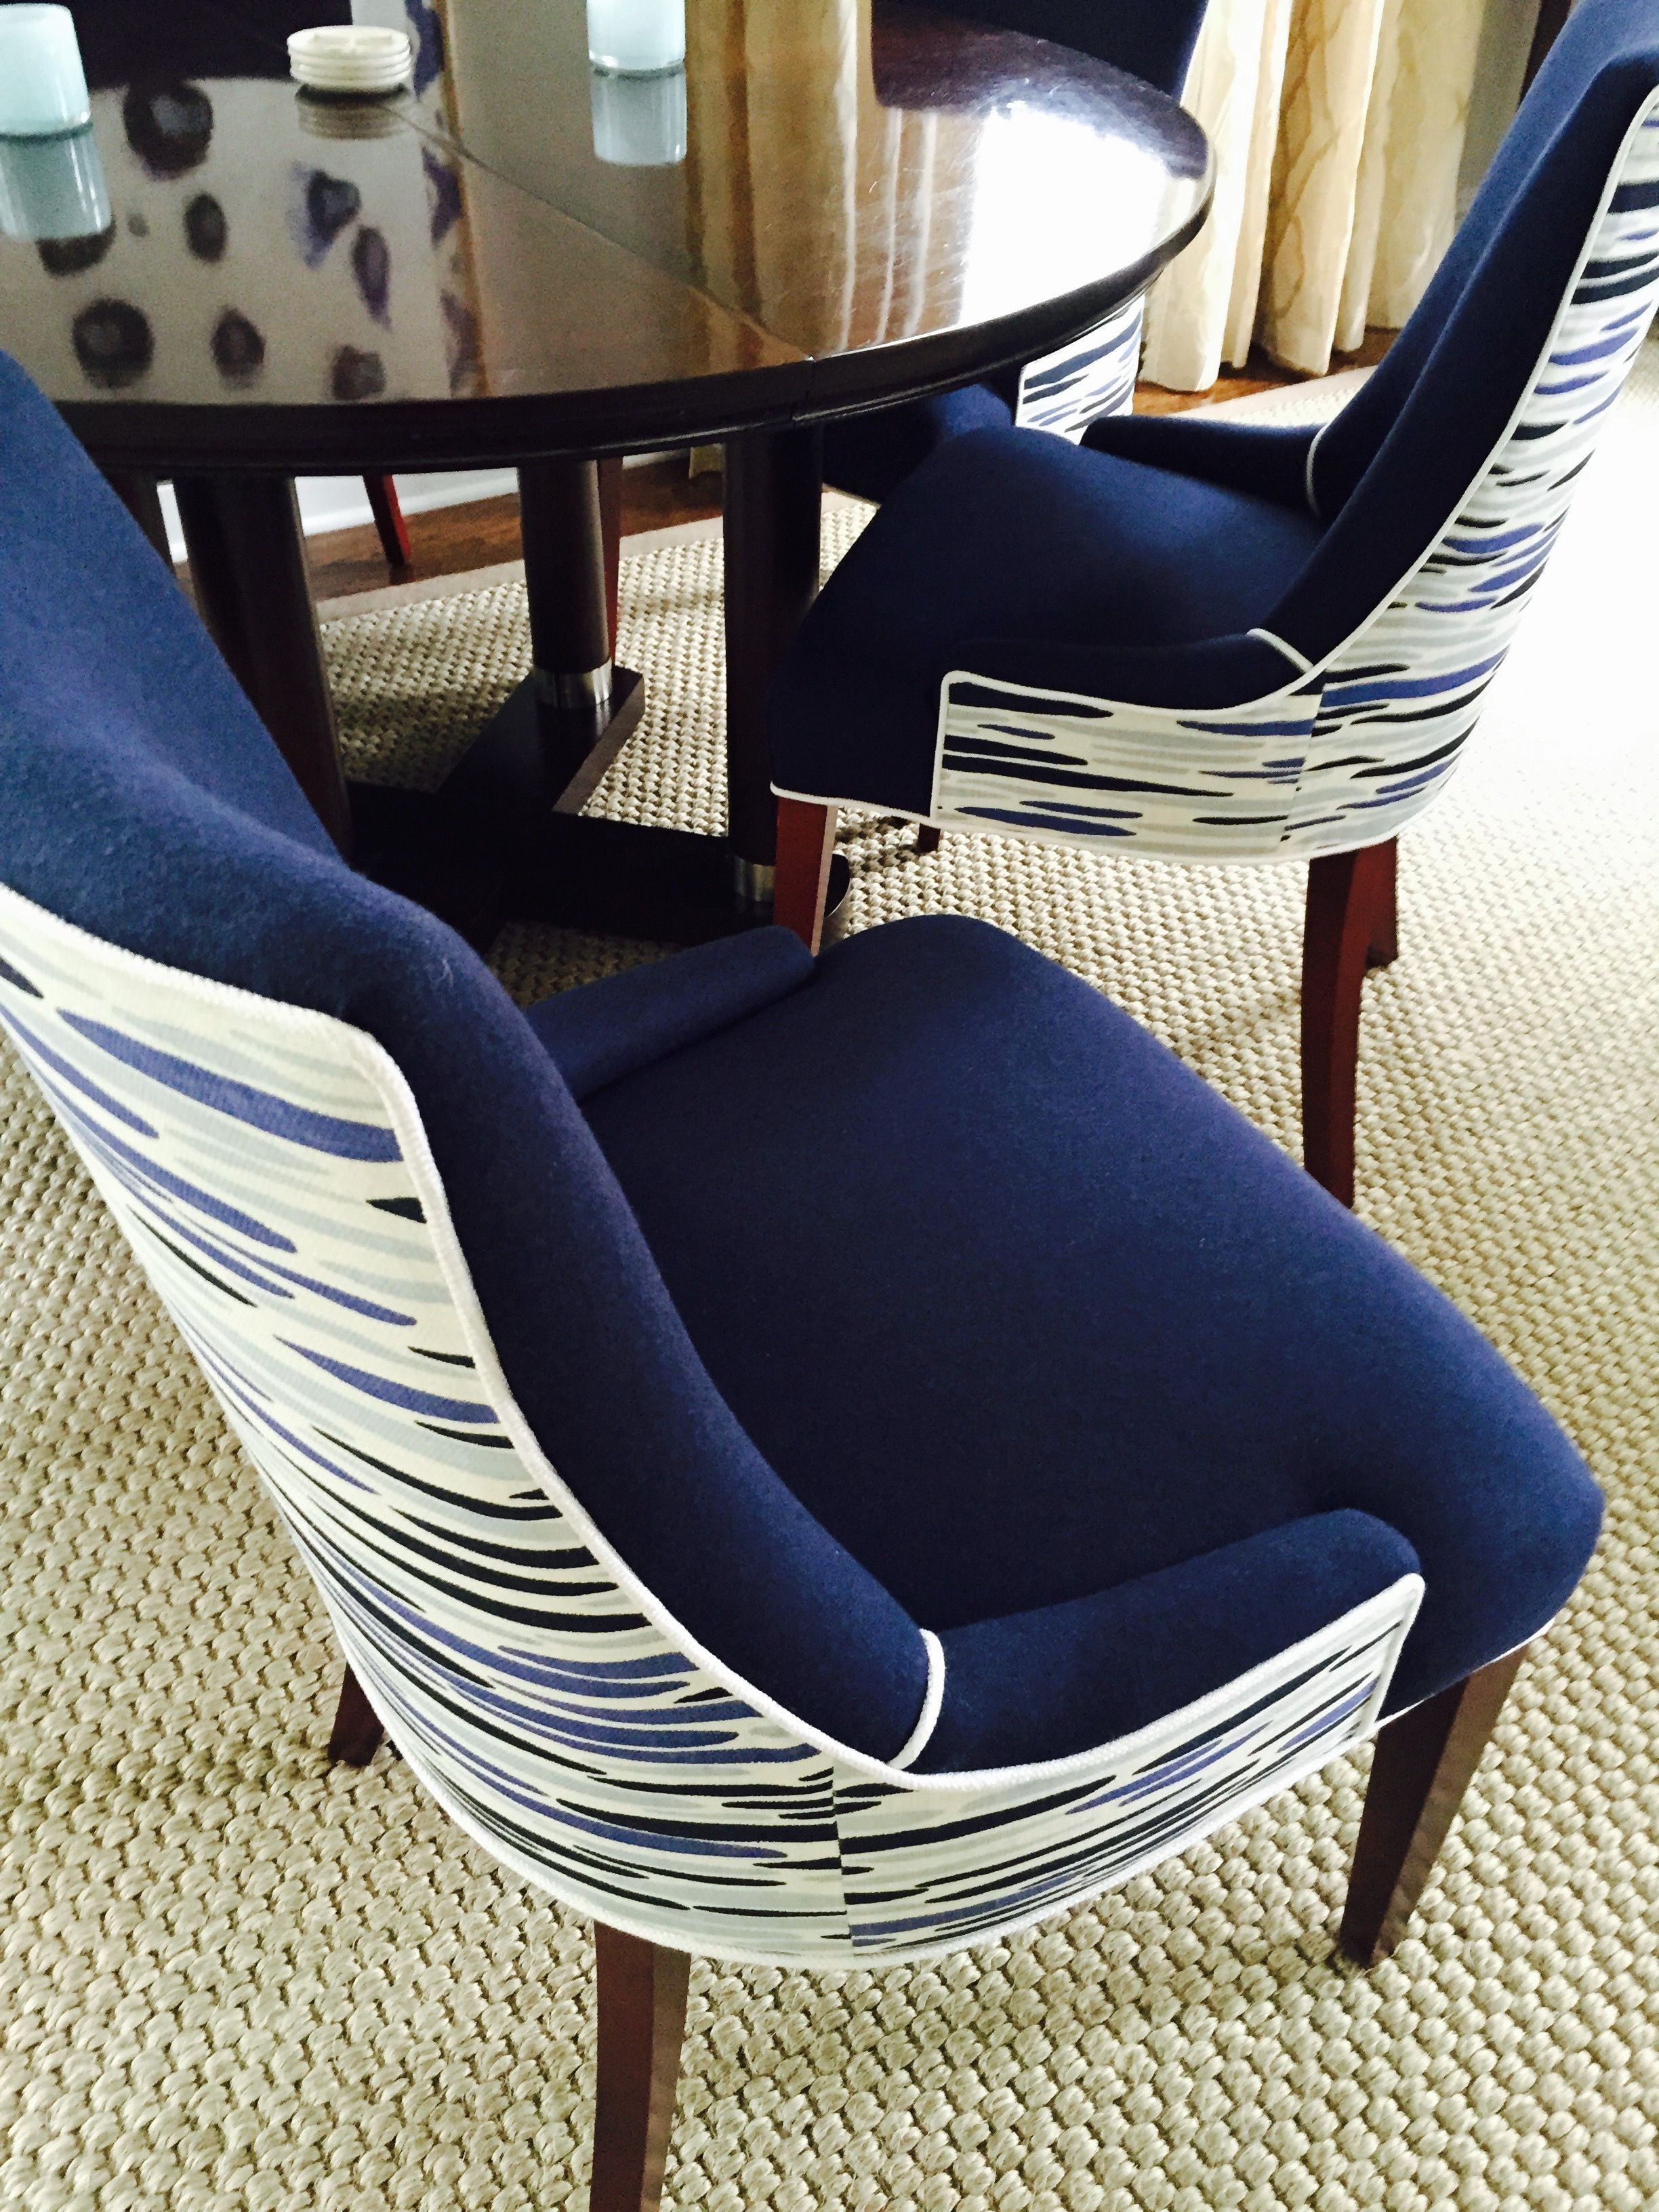 Leopold Group Designed Custom Upholstered Dining Chairs In Lulu Dk Fabric Robert Allen Wool Blazer Navy Zimmer Rohde White Linen Contrasting Welt